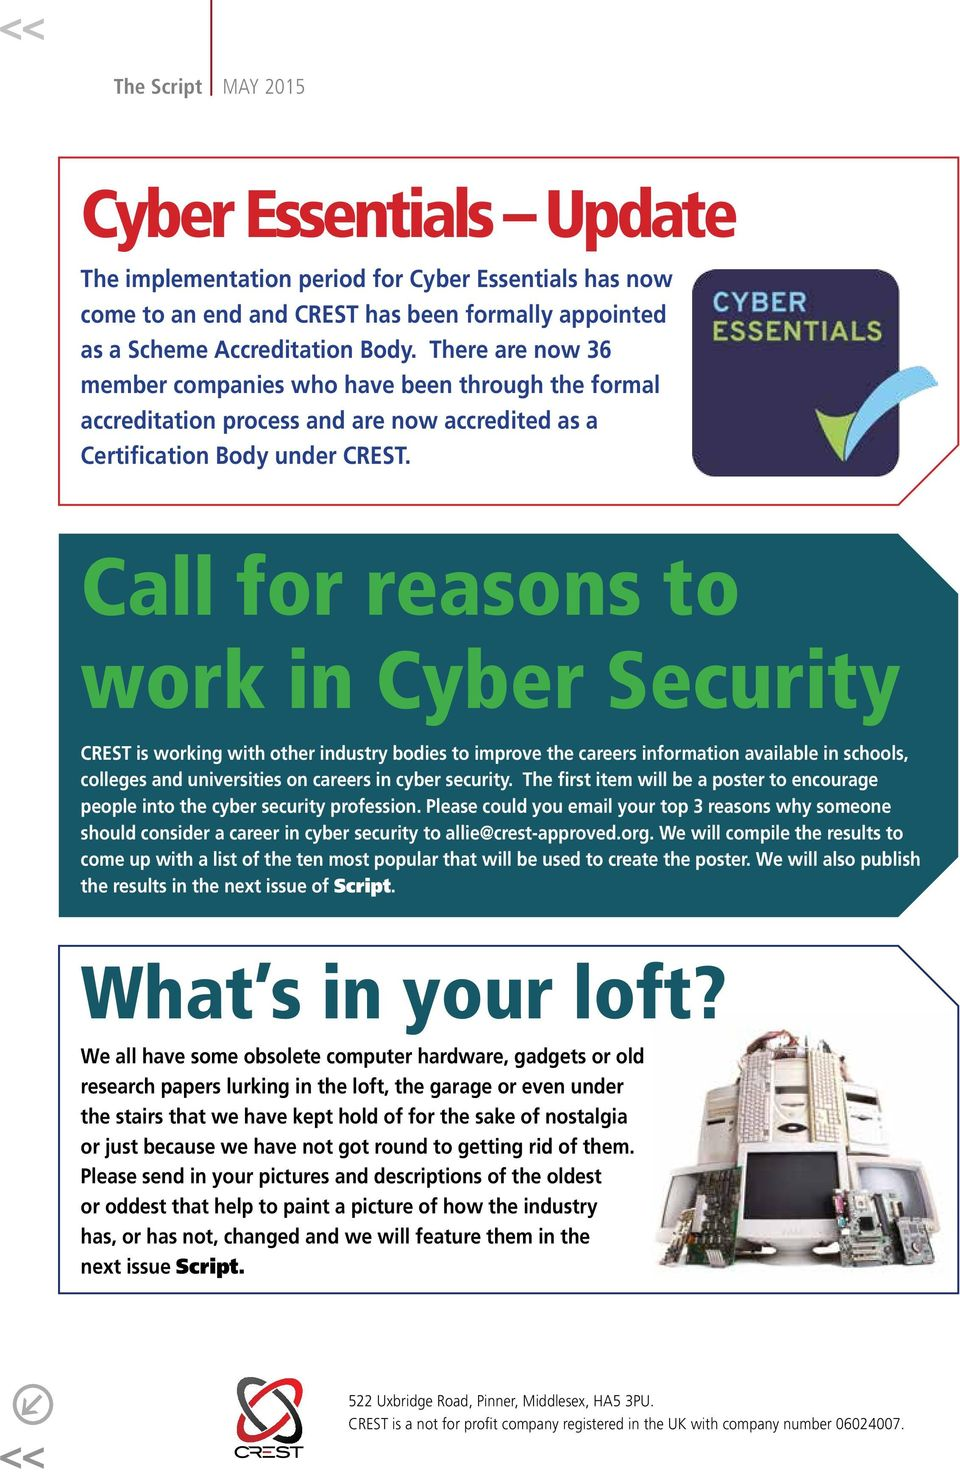 Call for reasons to work in Cyber Security CREST is working with other industry bodies to improve the careers information available in schools, colleges and universities on careers in cyber security.